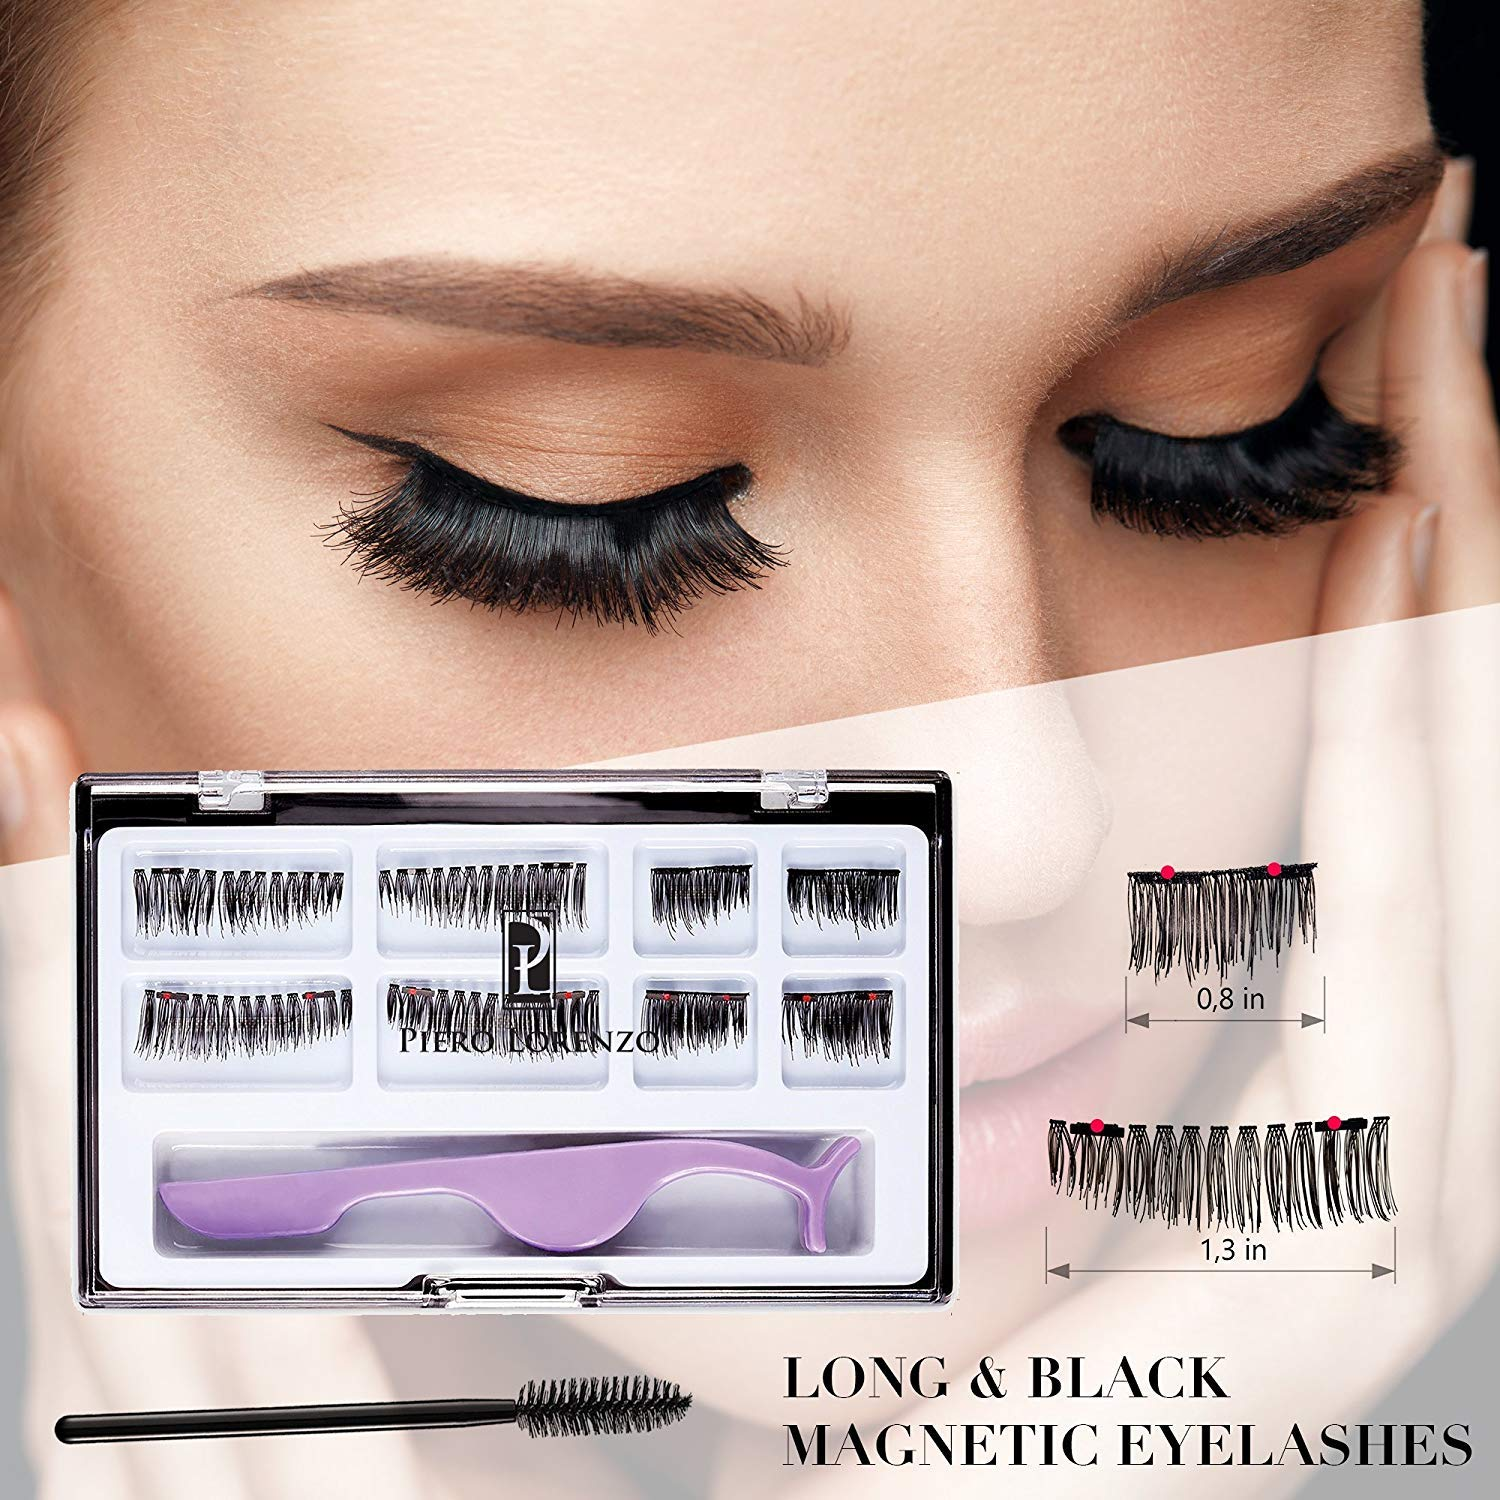 3b6b93b84b6 Dual Magnetic False Eyelashes Extension Set (8 pieces) - Full Size and Half  Size Fake Lashes in One Set with Tweezers and Brush - Reusable and Easy to  Apply ...